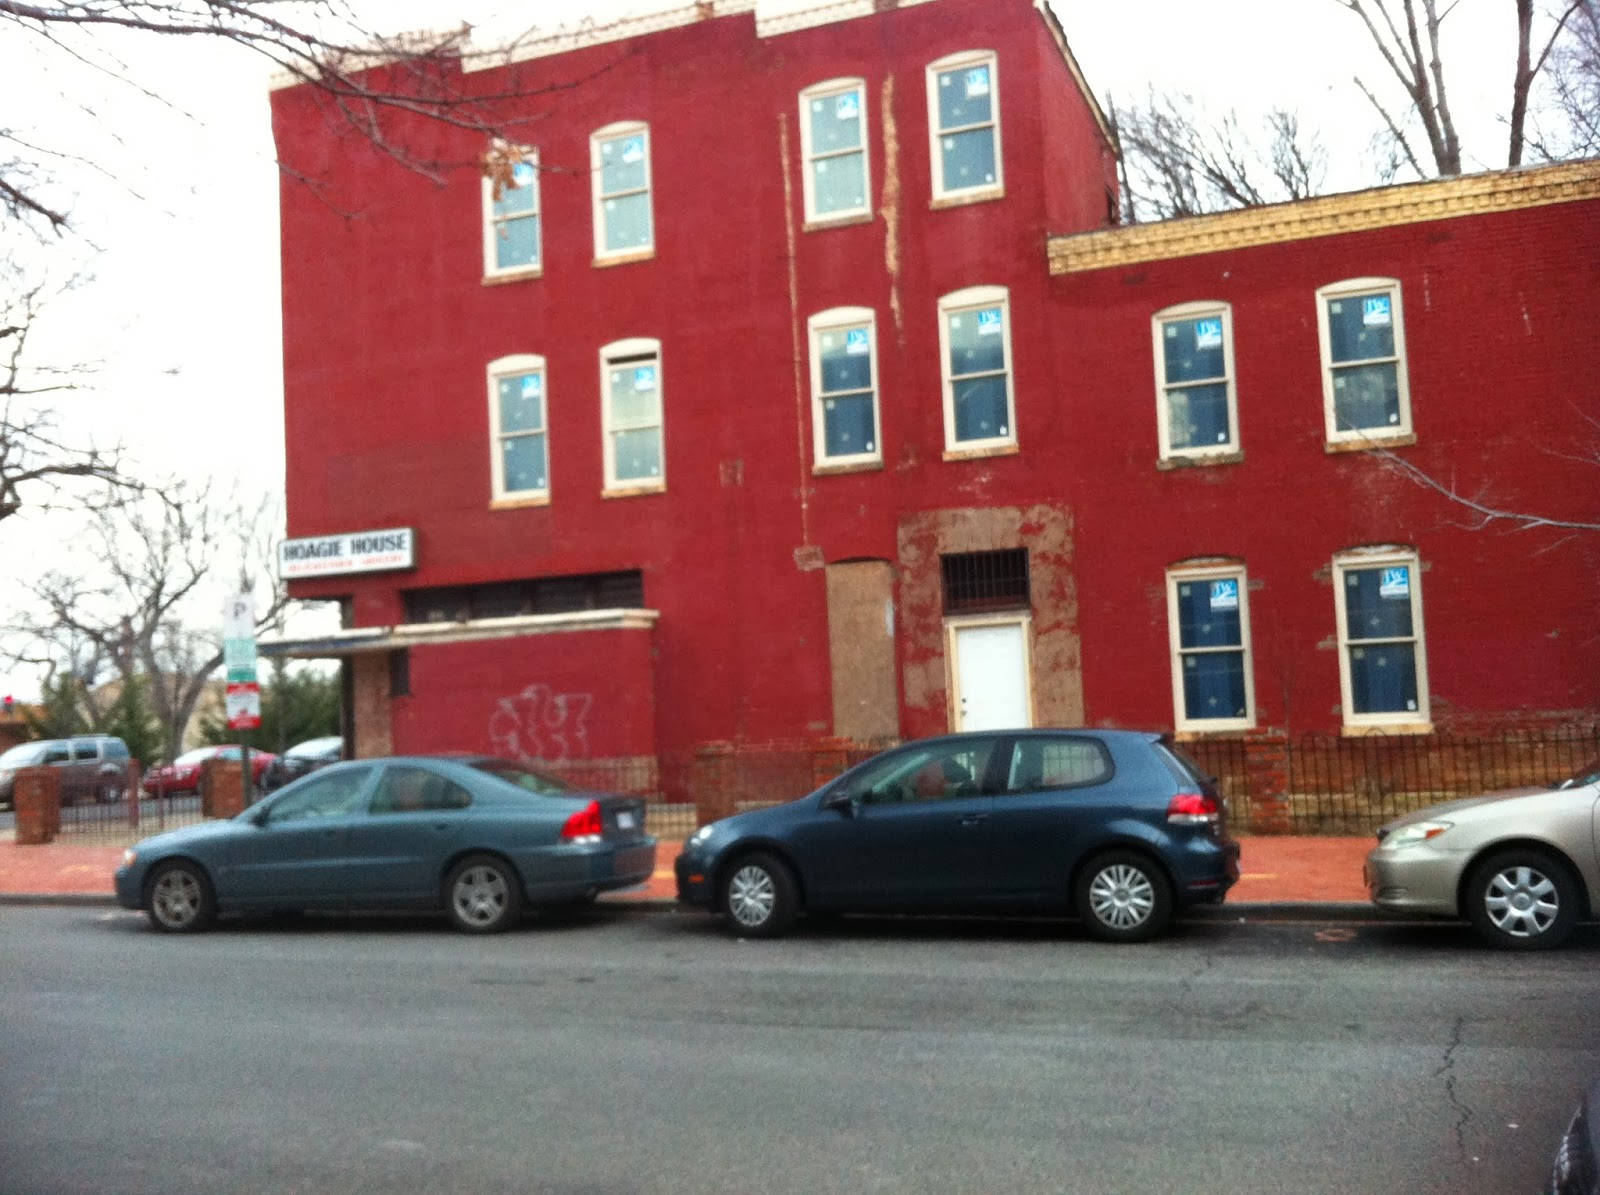 Dc vacant properties 1251 4th st nw 1251 4th st nw 1betcityfo Images